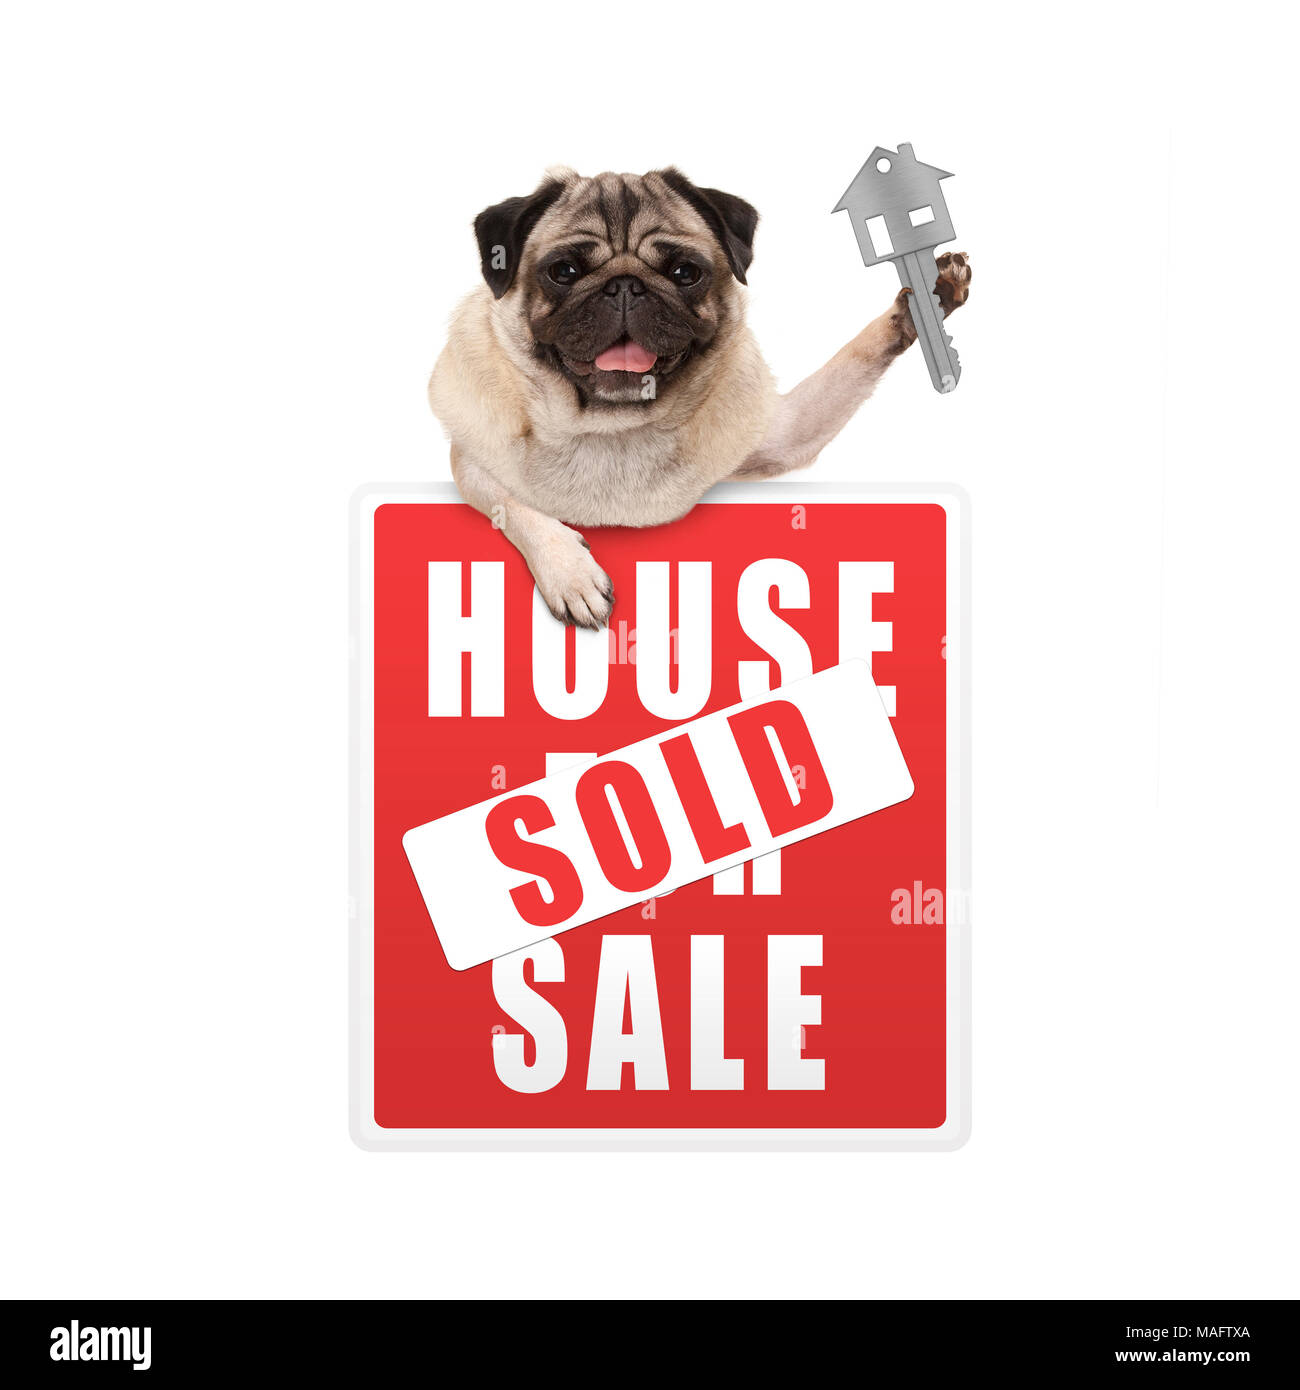 happy pug puppy dog hanging with paws on red house sold sign holding up house key, isolated on white background Stock Photo